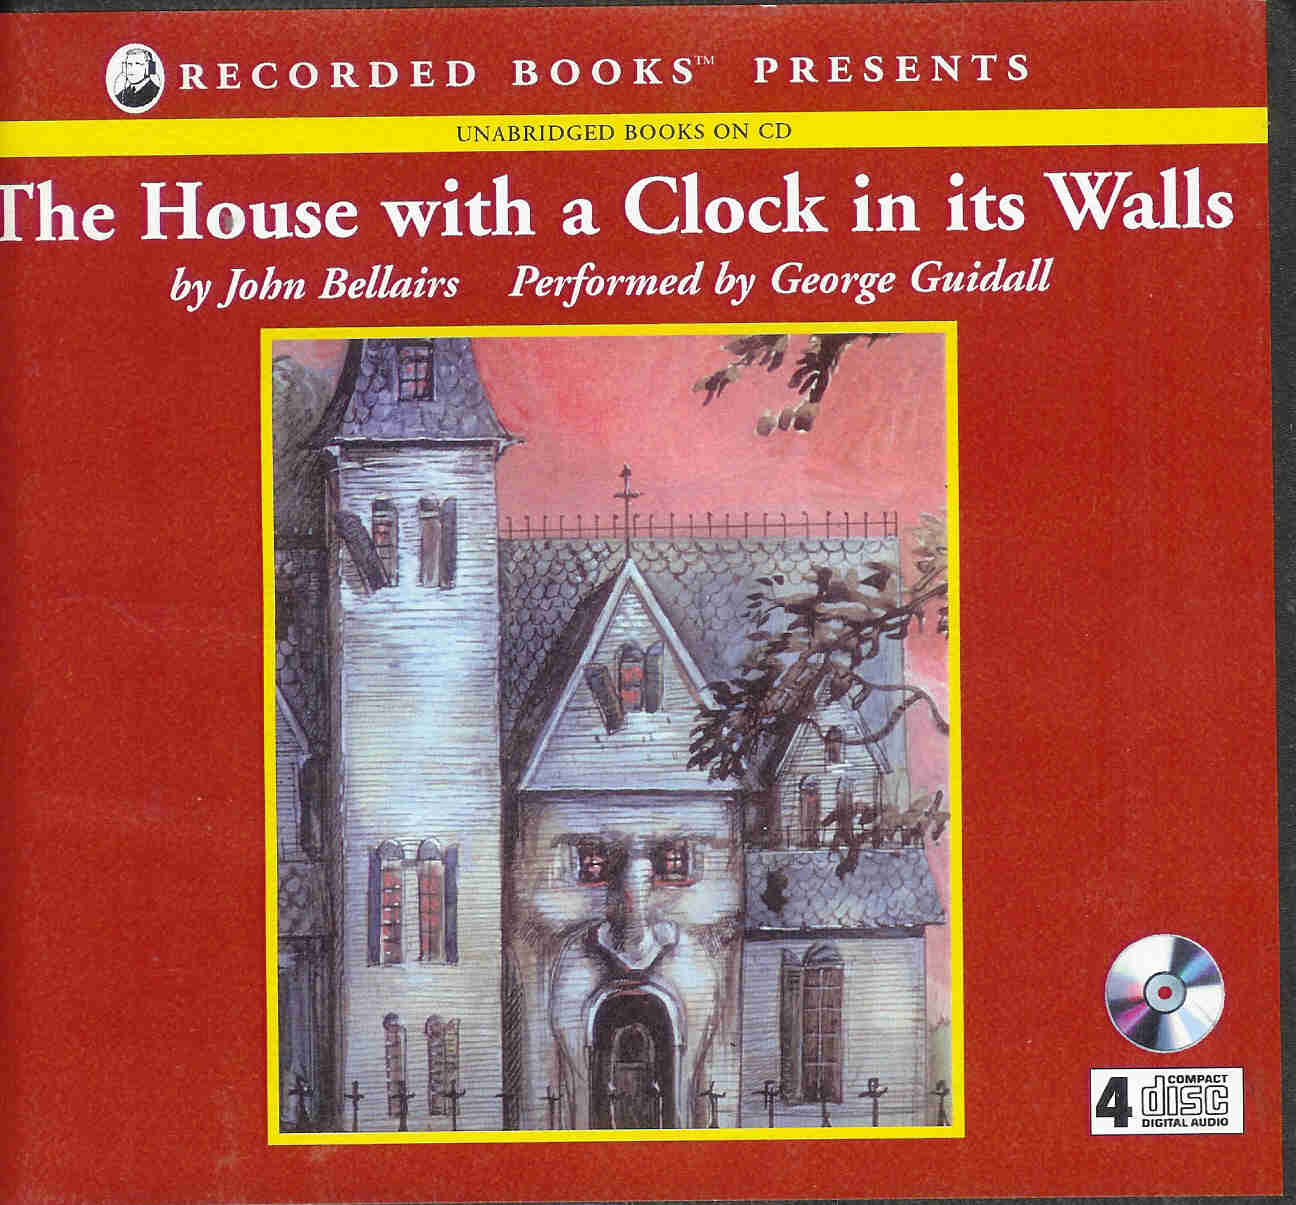 The house with the clock in its walls movie for The house with a clock in its walls ebook